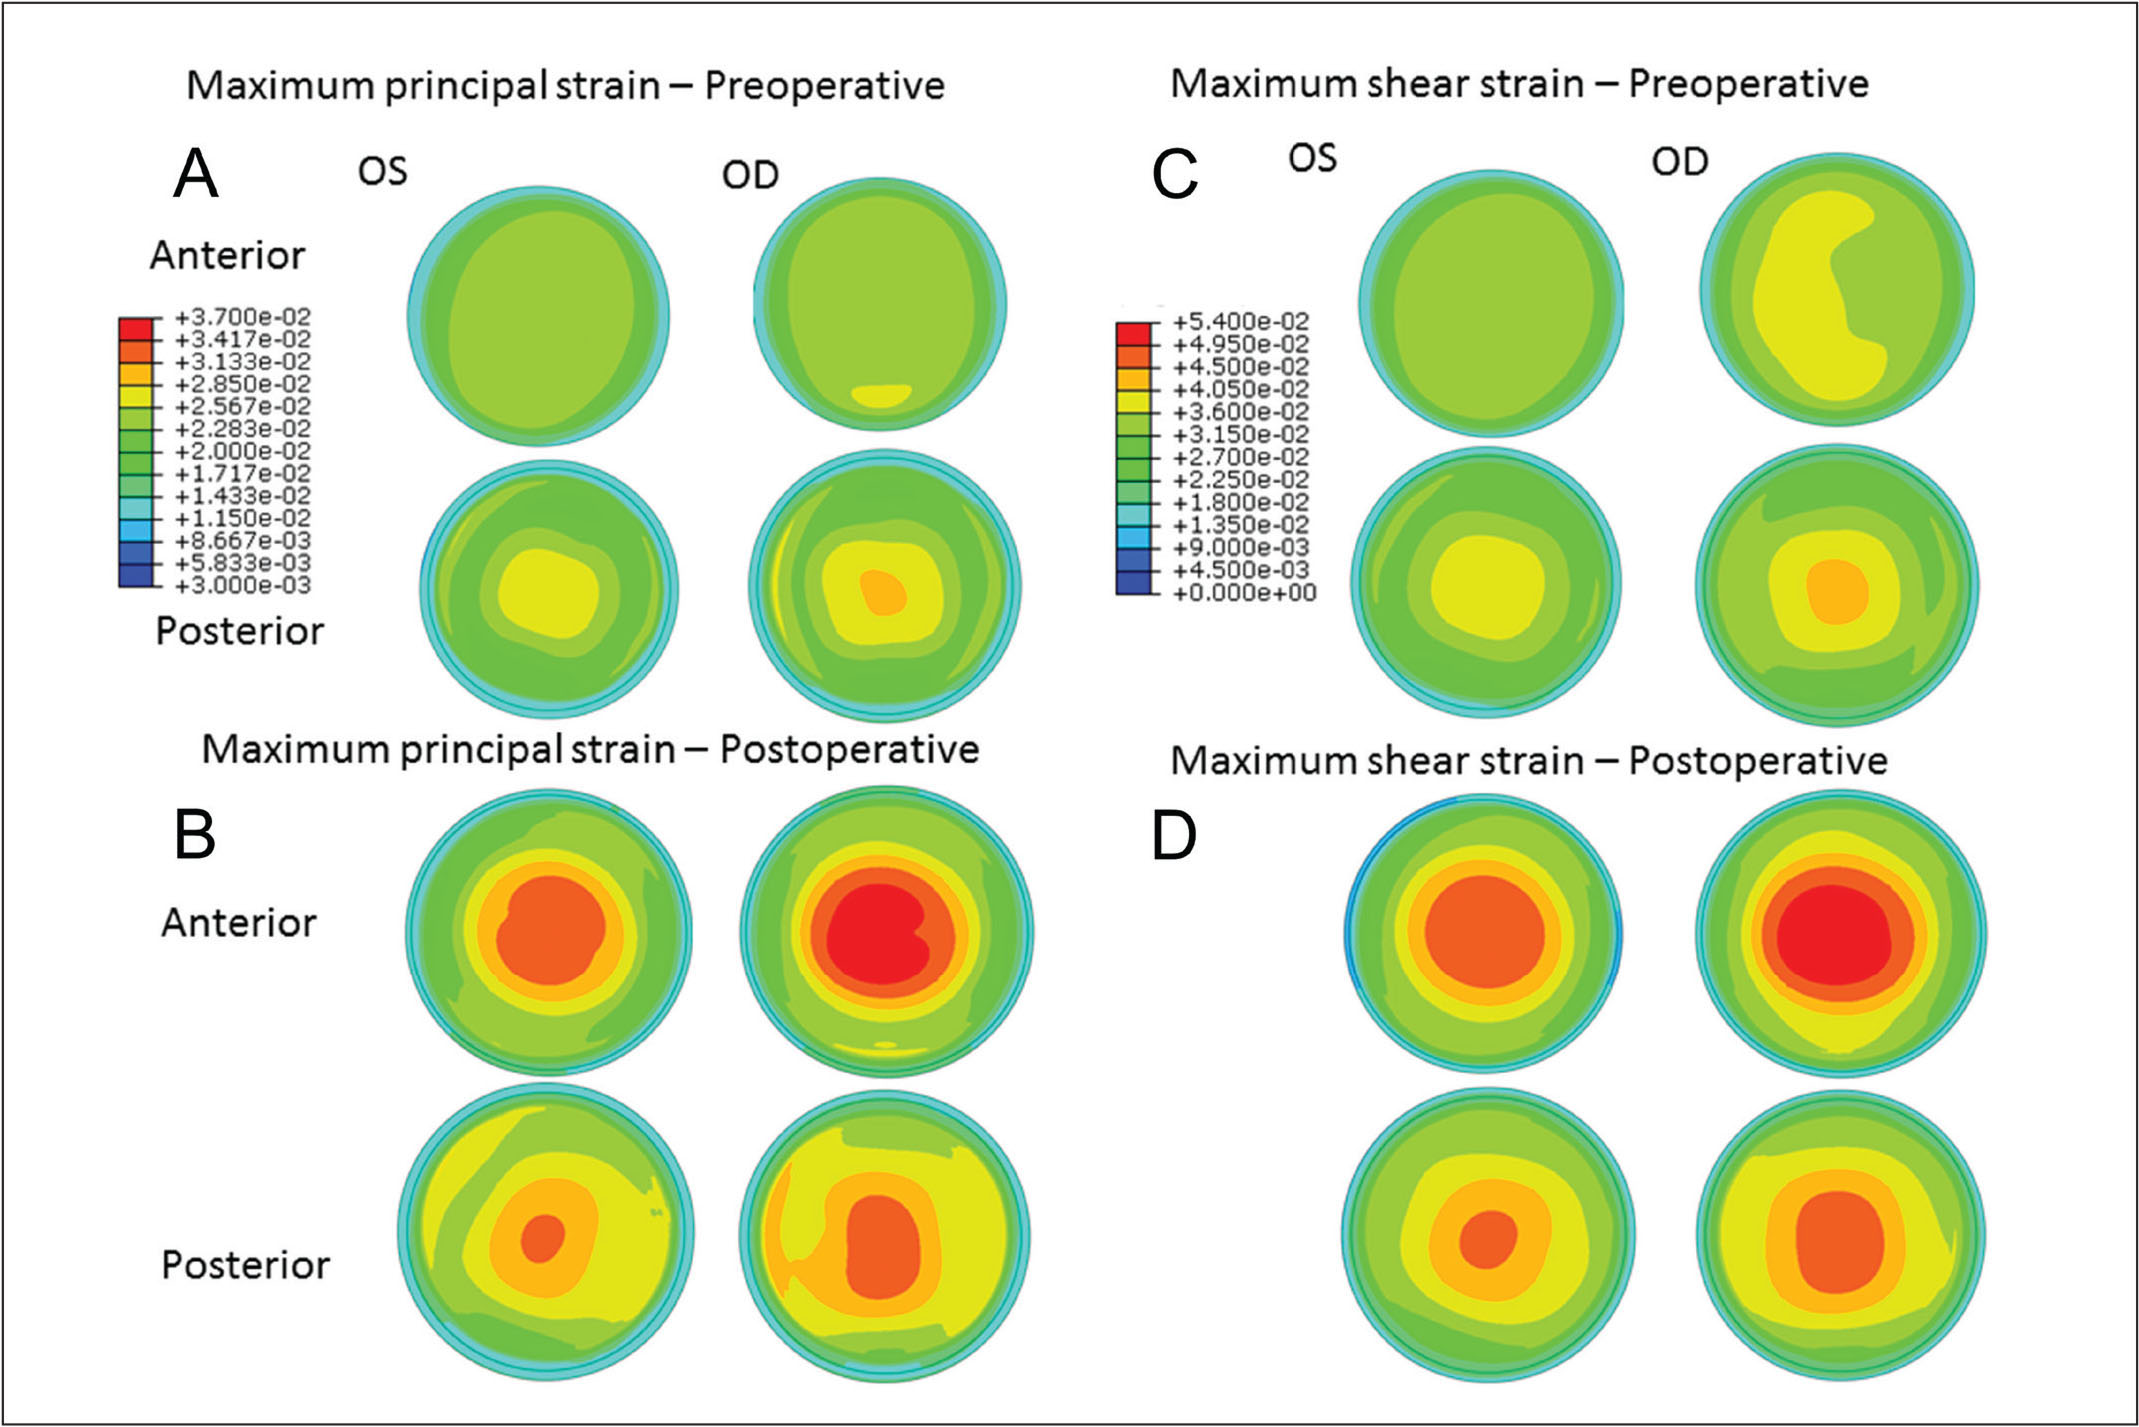 Maps of maximum principal strain from the anterior and posterior stromal surfaces in the (A) preoperative and (B) simulated postoperative state. Higher strain values, larger areas of increased strain, and more eccentric distributions of strain are apparent in all states and in all regions in the eye that ultimately developed ectasia (right eye [OD]). An inferior region of locally concentrated strain was predicted in the postoperative state of the OD where the ectatic region manifested clinically (A). Highest focal maximum principal strain values (dimensionless units) from the anterior residual stromal bed were 0.038 in the left eye (OS) and 0.042 in the OD in the preoperative state, and 0.049 and 0.053, respectively, in the postoperative state. Maximum shear strain was also highly asymmetric in (C) preoperative and (D) postoperative models between eyes throughout the stroma and favored greater shear strain in the eye that eventually developed ectasia.